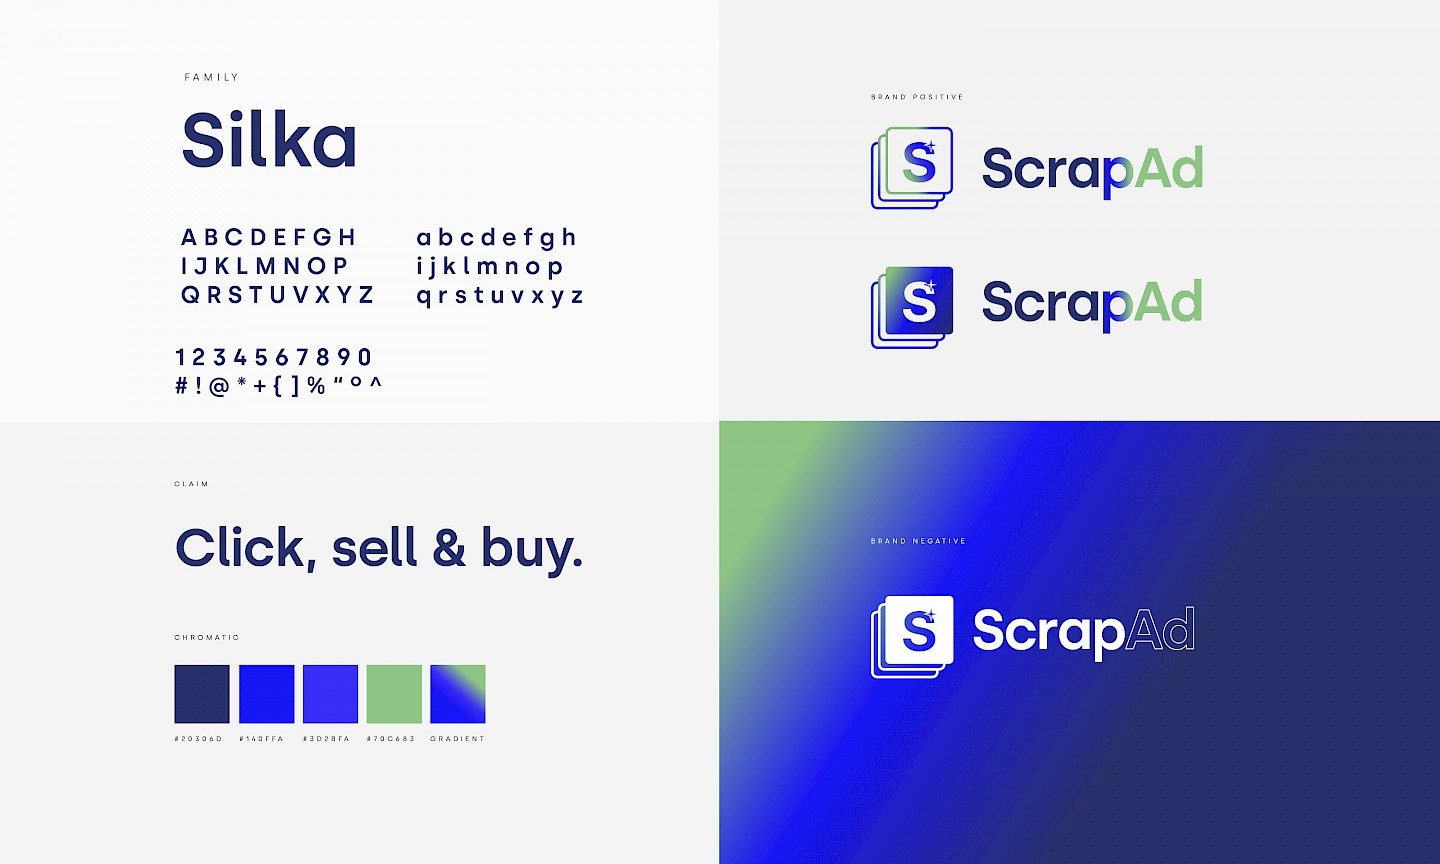 branding guidelines branding industrial move scrap webapp scrapad graphic 2 digital